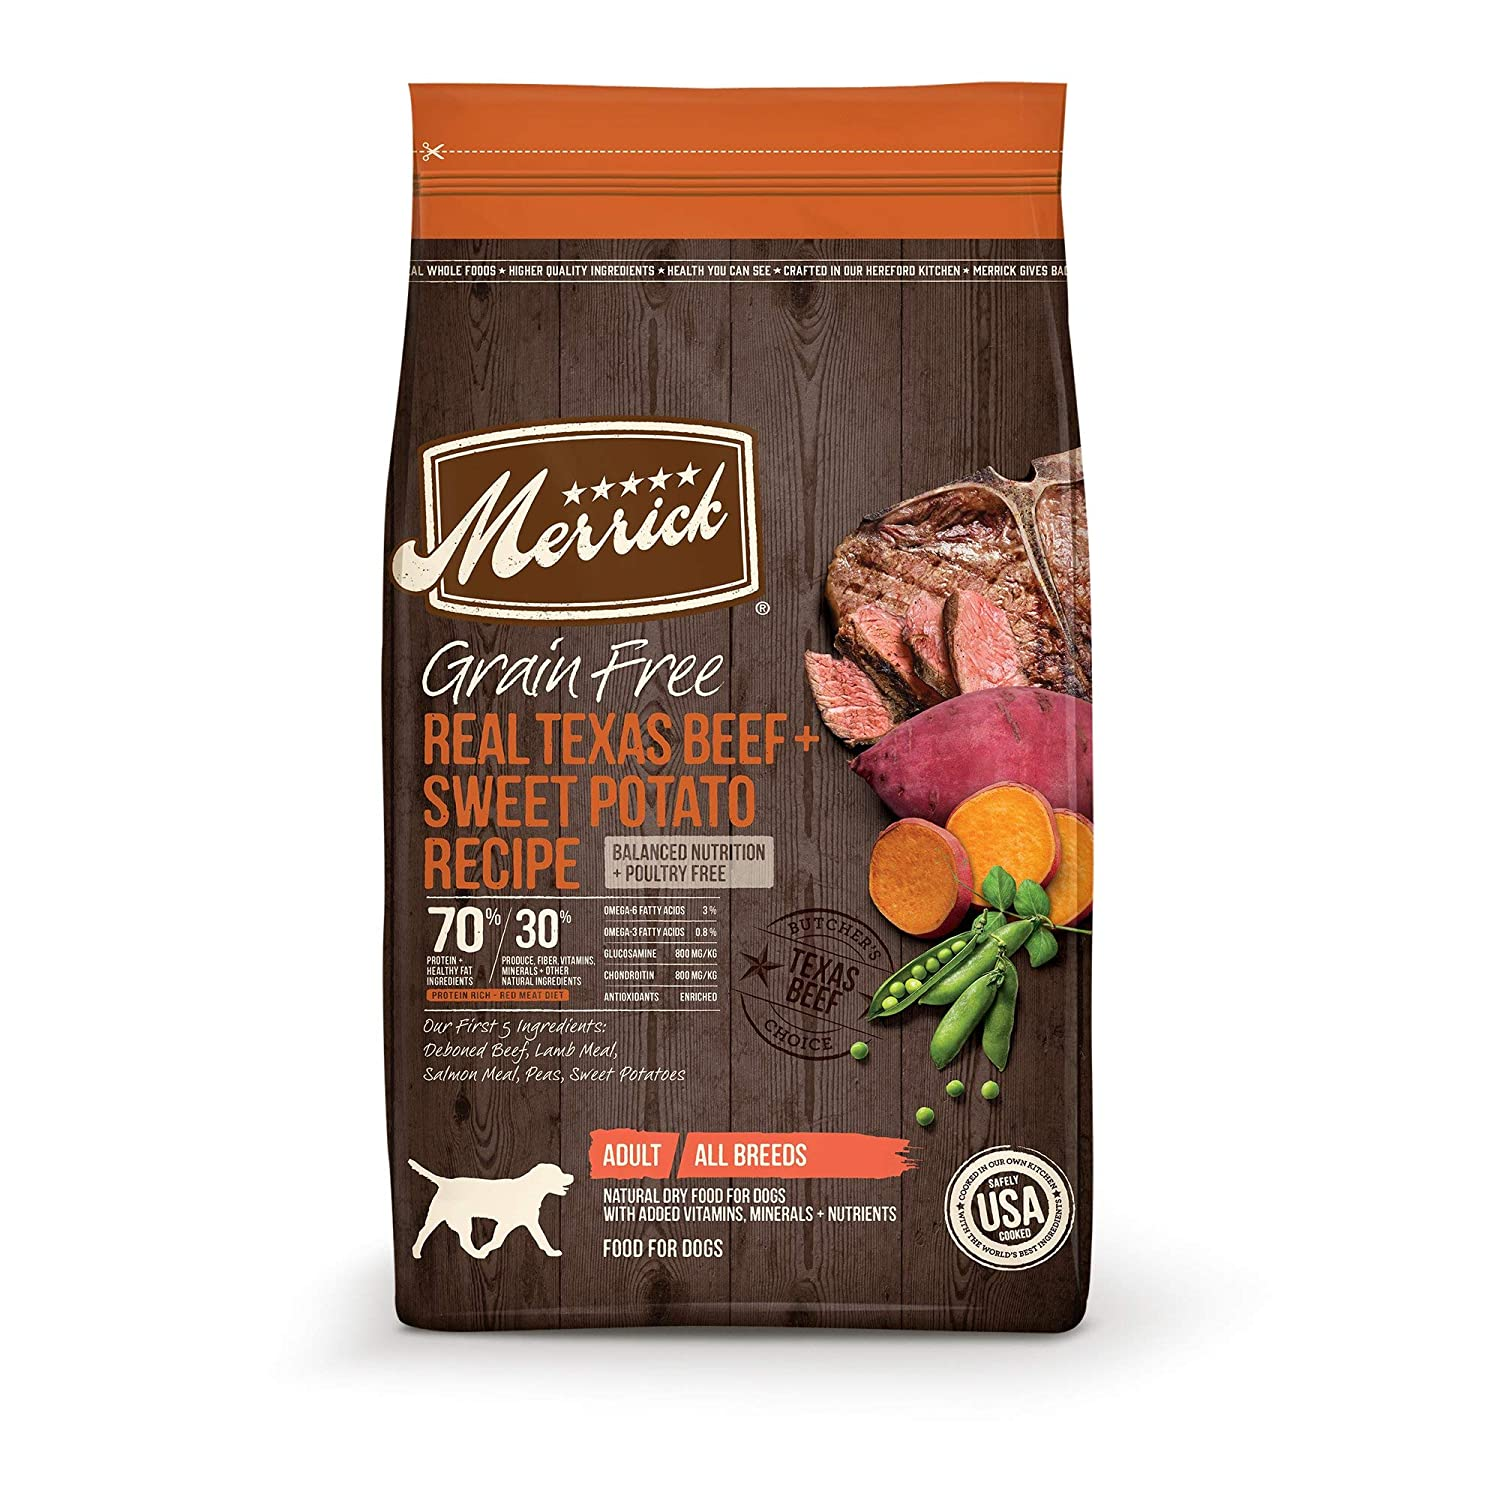 1.Merrick Grain-Free Texas Beef & Sweet Potato Recipe Dry Dog Food